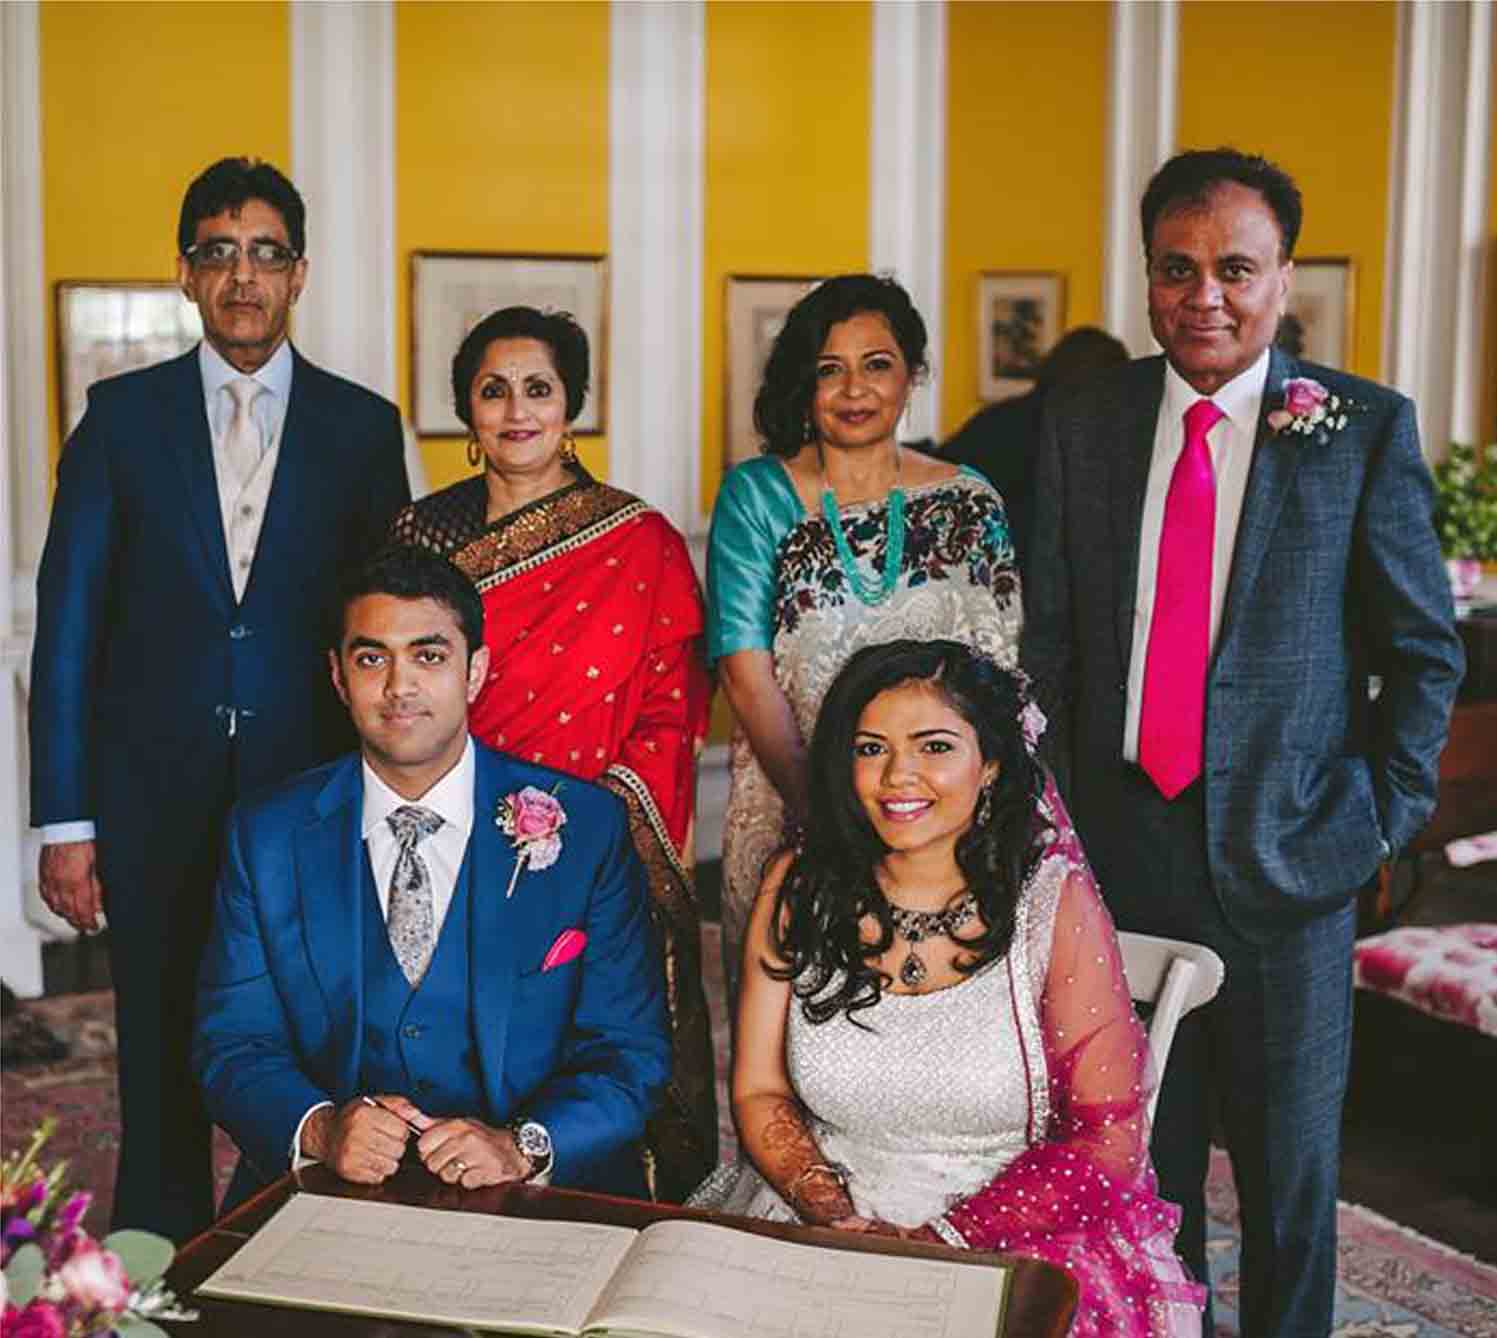 contemporary hair & mkp 4 Indian weddings by FT makeup London